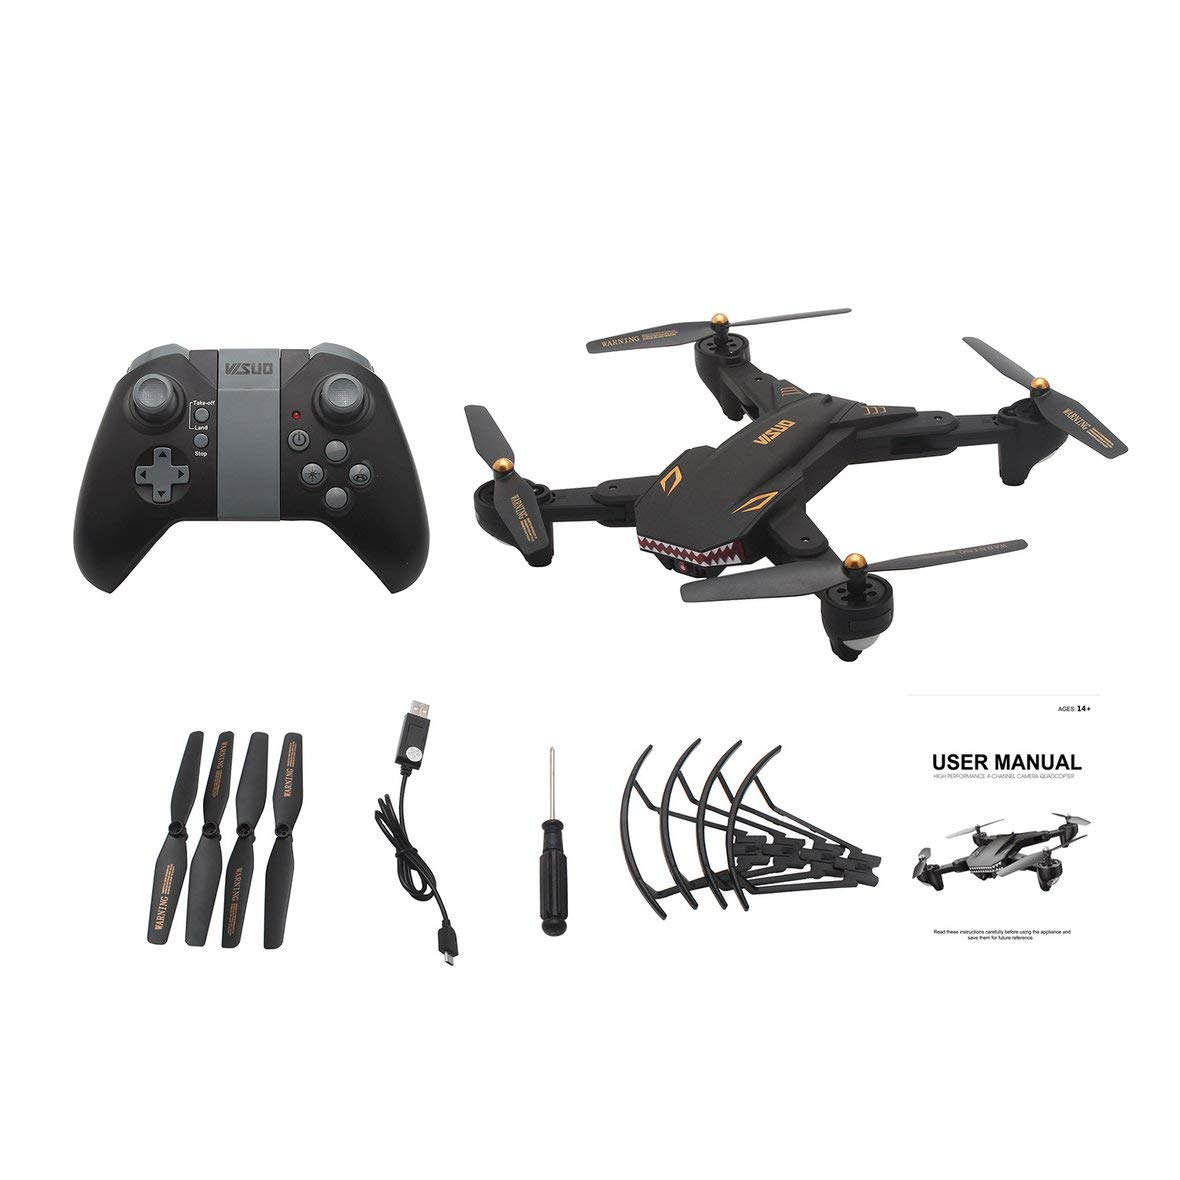 Tivolii VISUO XS809S RC Drone WiFi FPV Selfie Camera Altitude Hold Foldable Headless Mode One Key Return 3D Flip Quadcopter